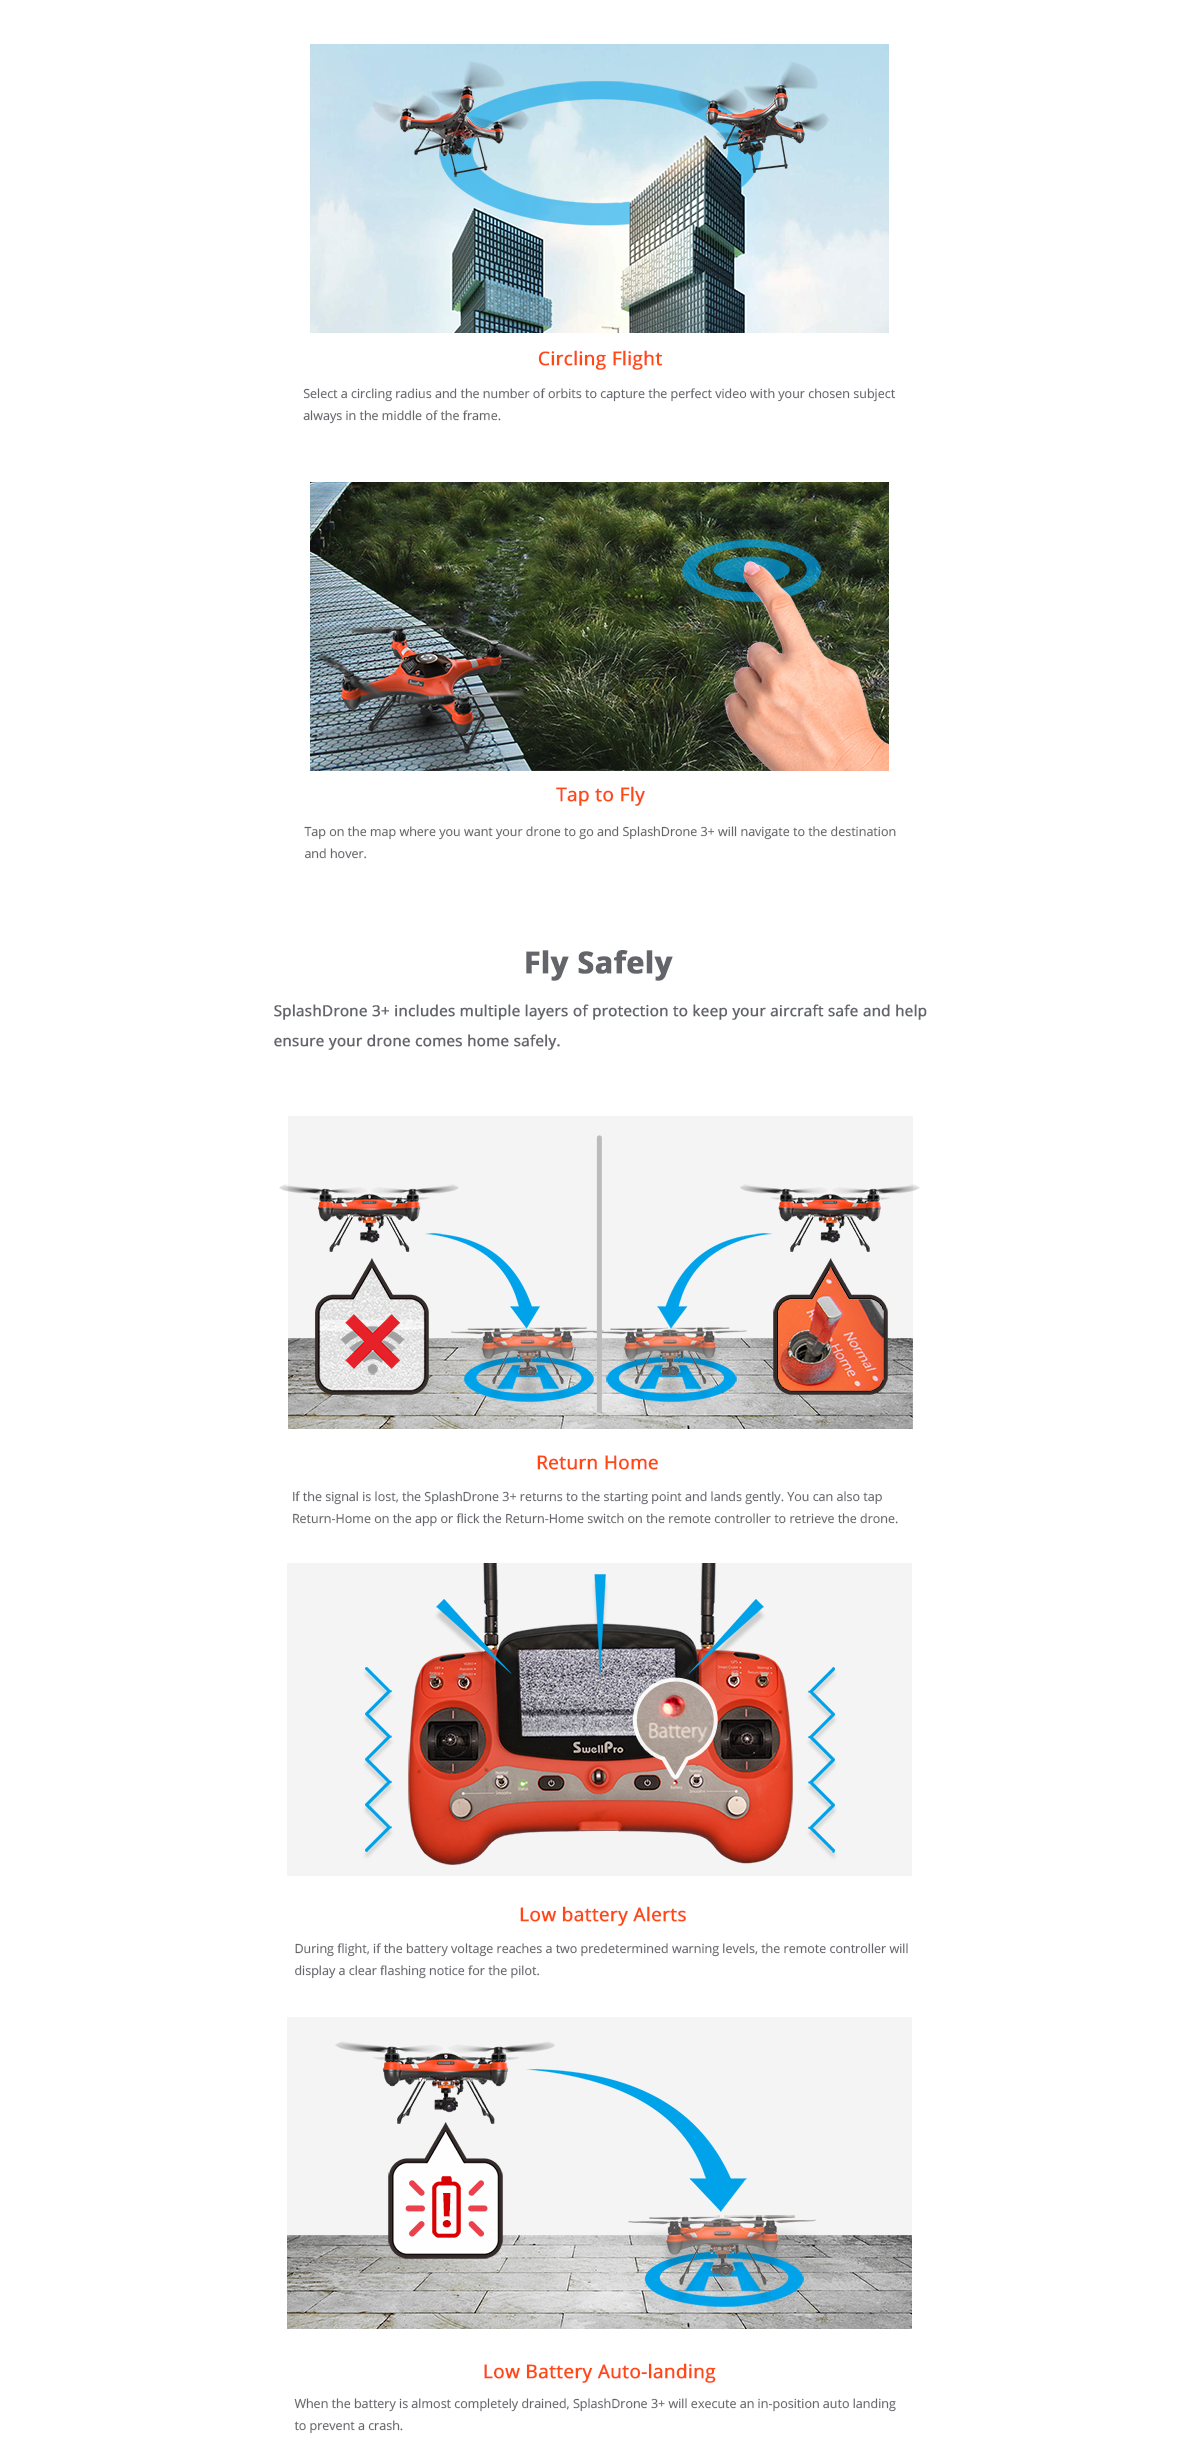 Swellpro Splash Drone 3 Waterproof UAV Drone + 3 Axis Brushless Gimbal and 4K Camera